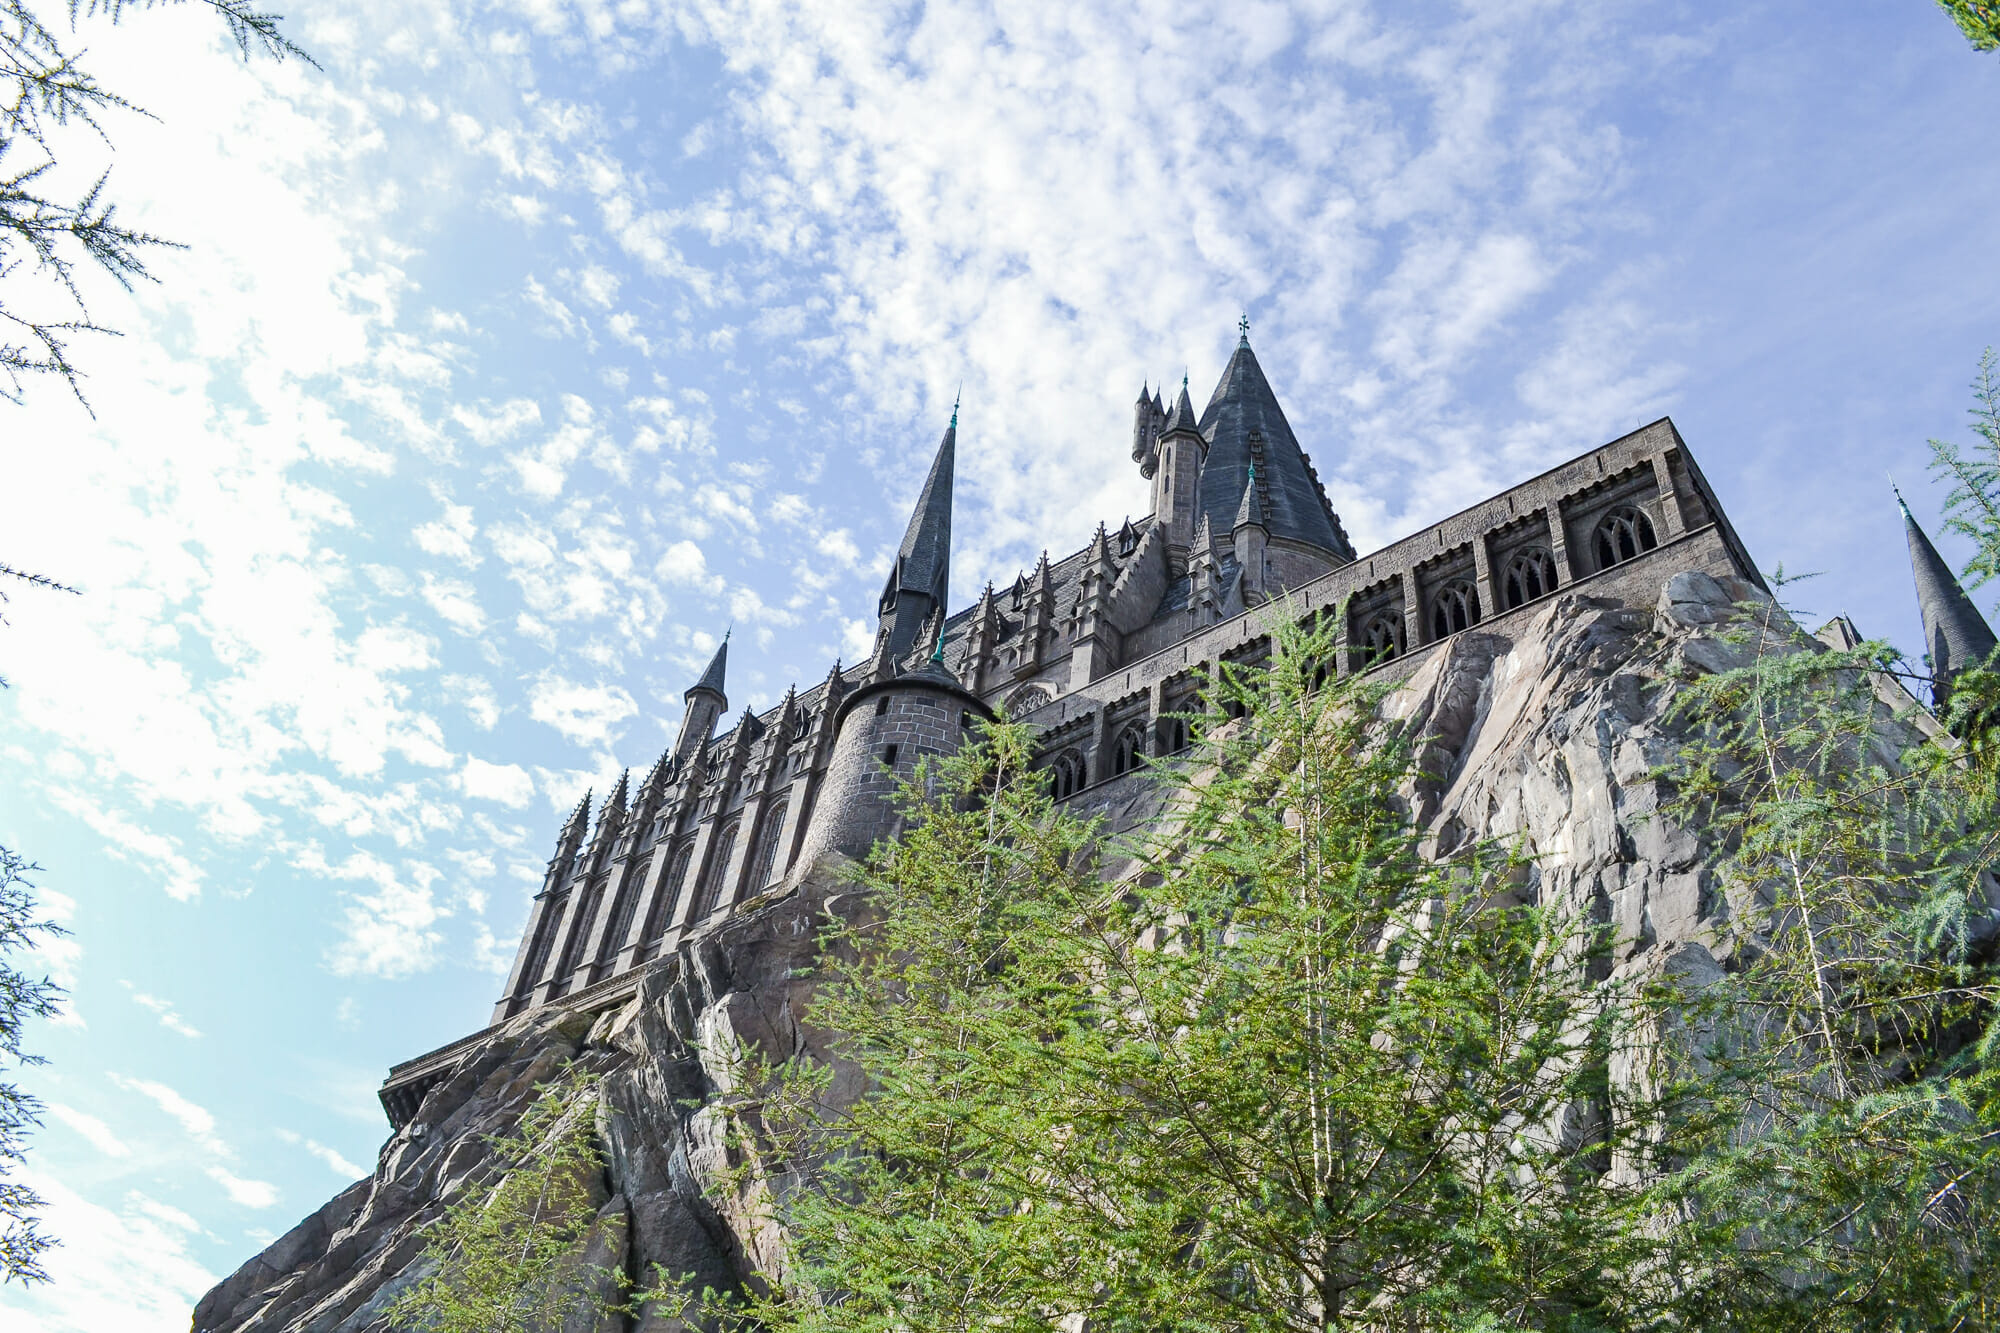 Foto do castelo de Hogwarts, que fica na Universal, no Islands of Adventure, com o céu azul ao fundo